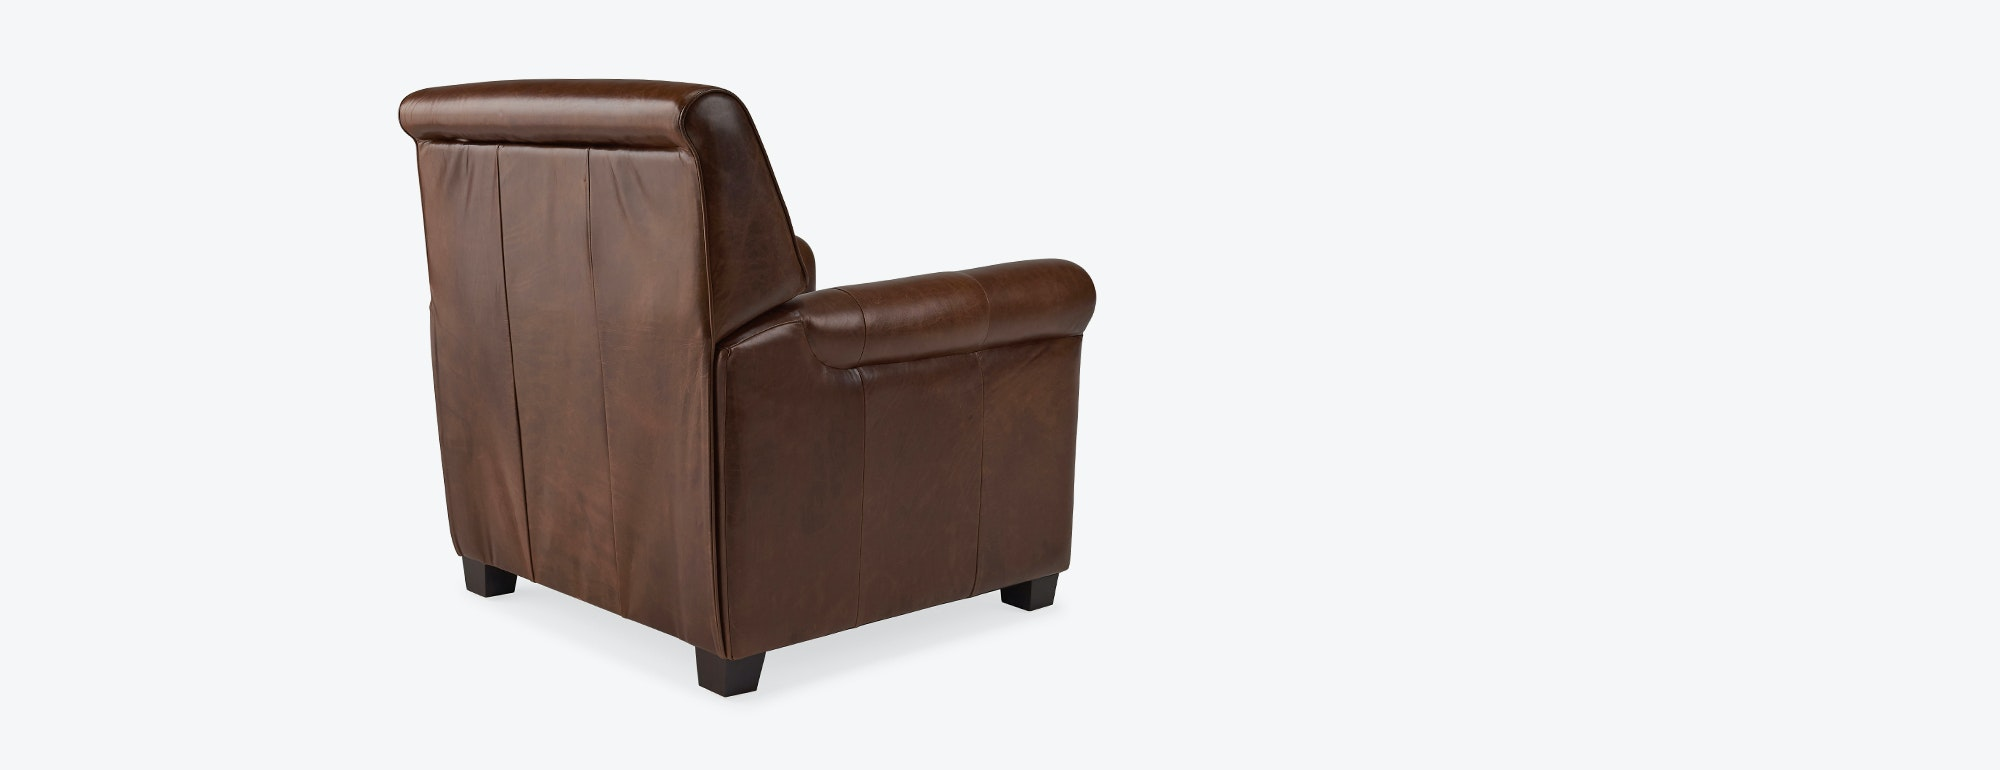 shown in Academy Cuero Leather